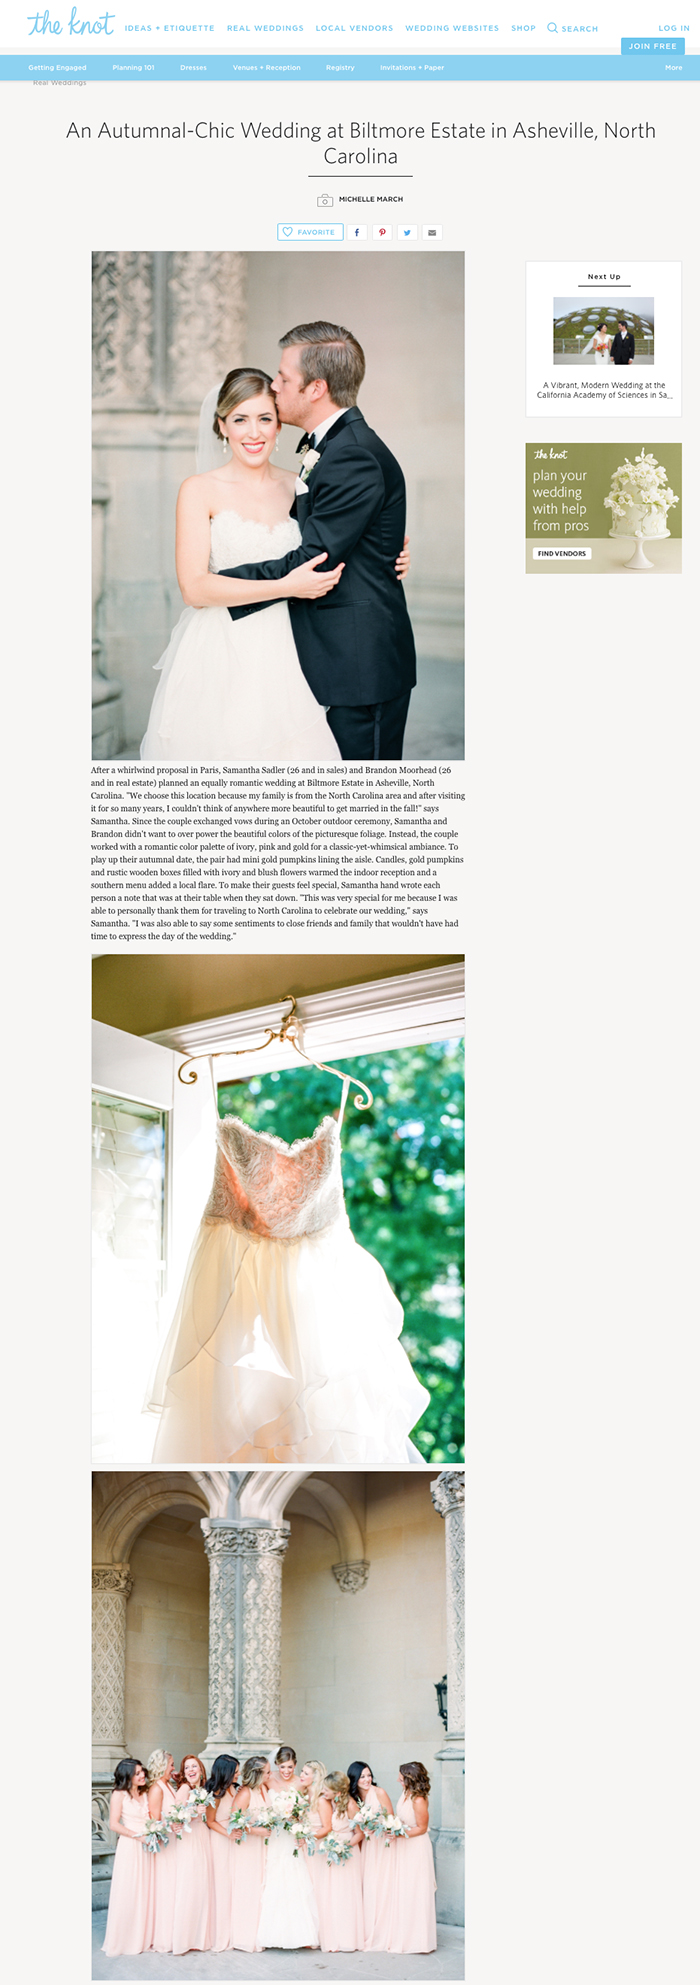 michelle-march-the-knot-biltmore-estate-asheville-wedding-featured